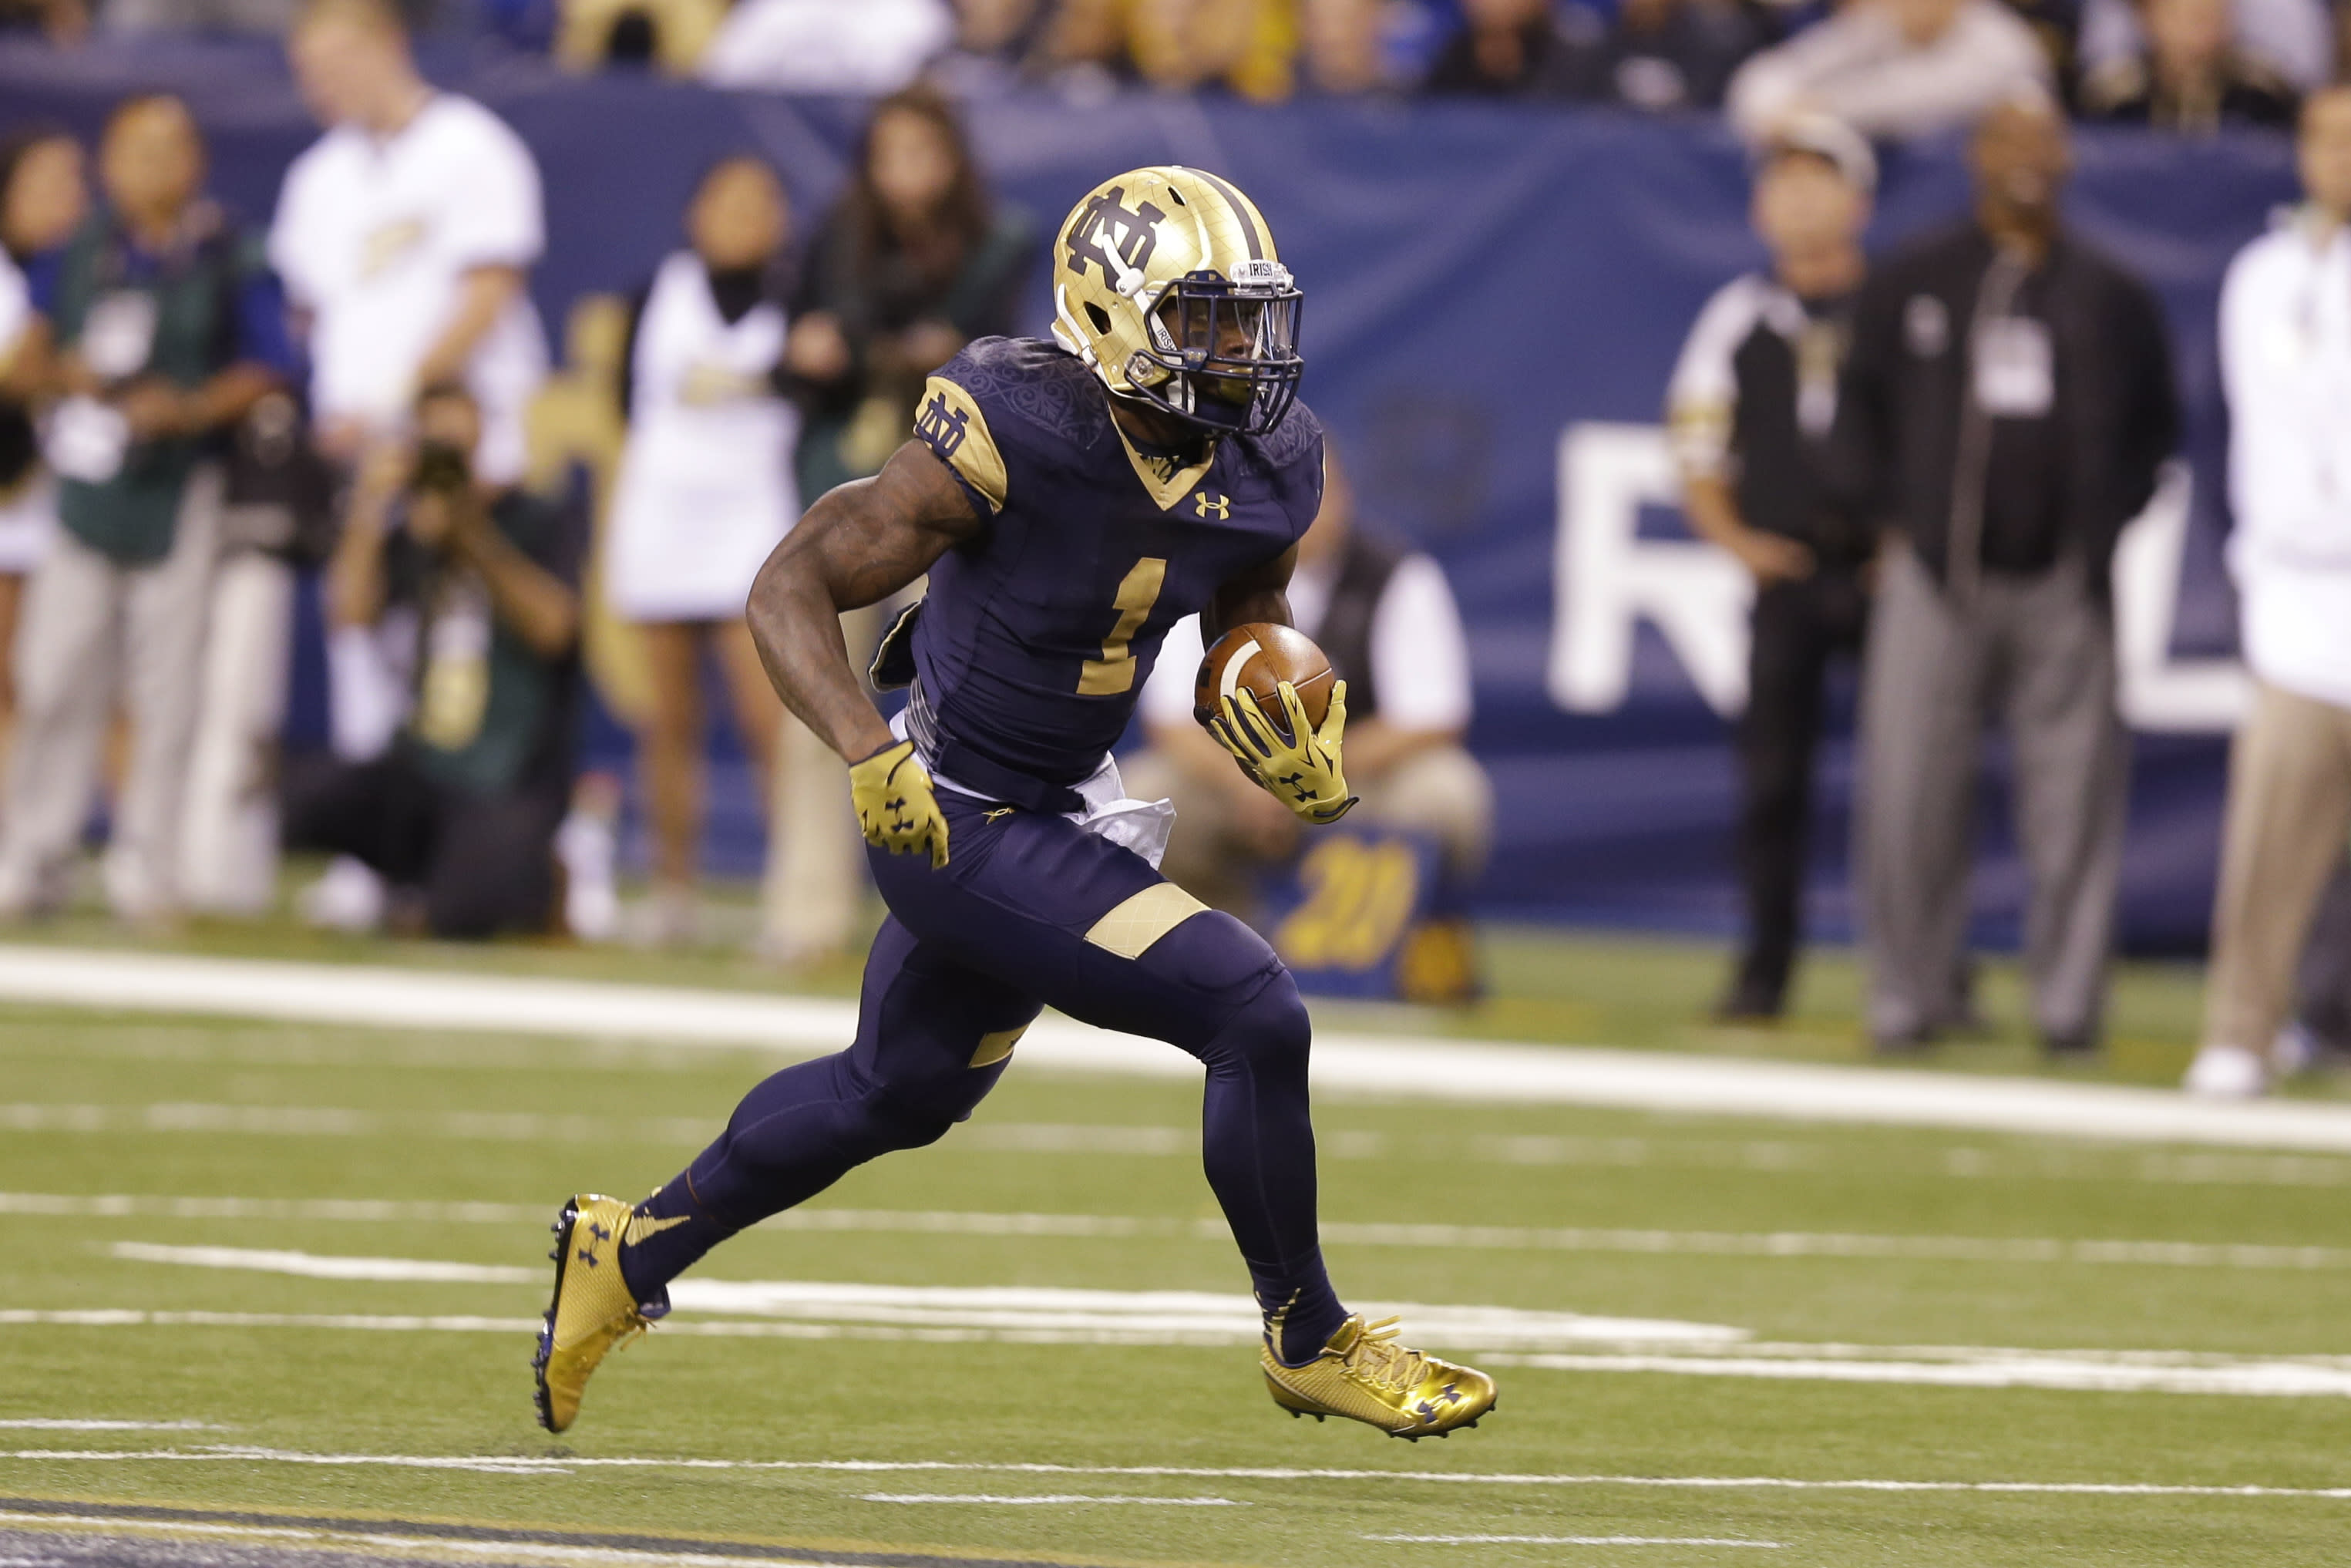 Notre Dame Declares Rb Greg Bryant Ineligible For 2015